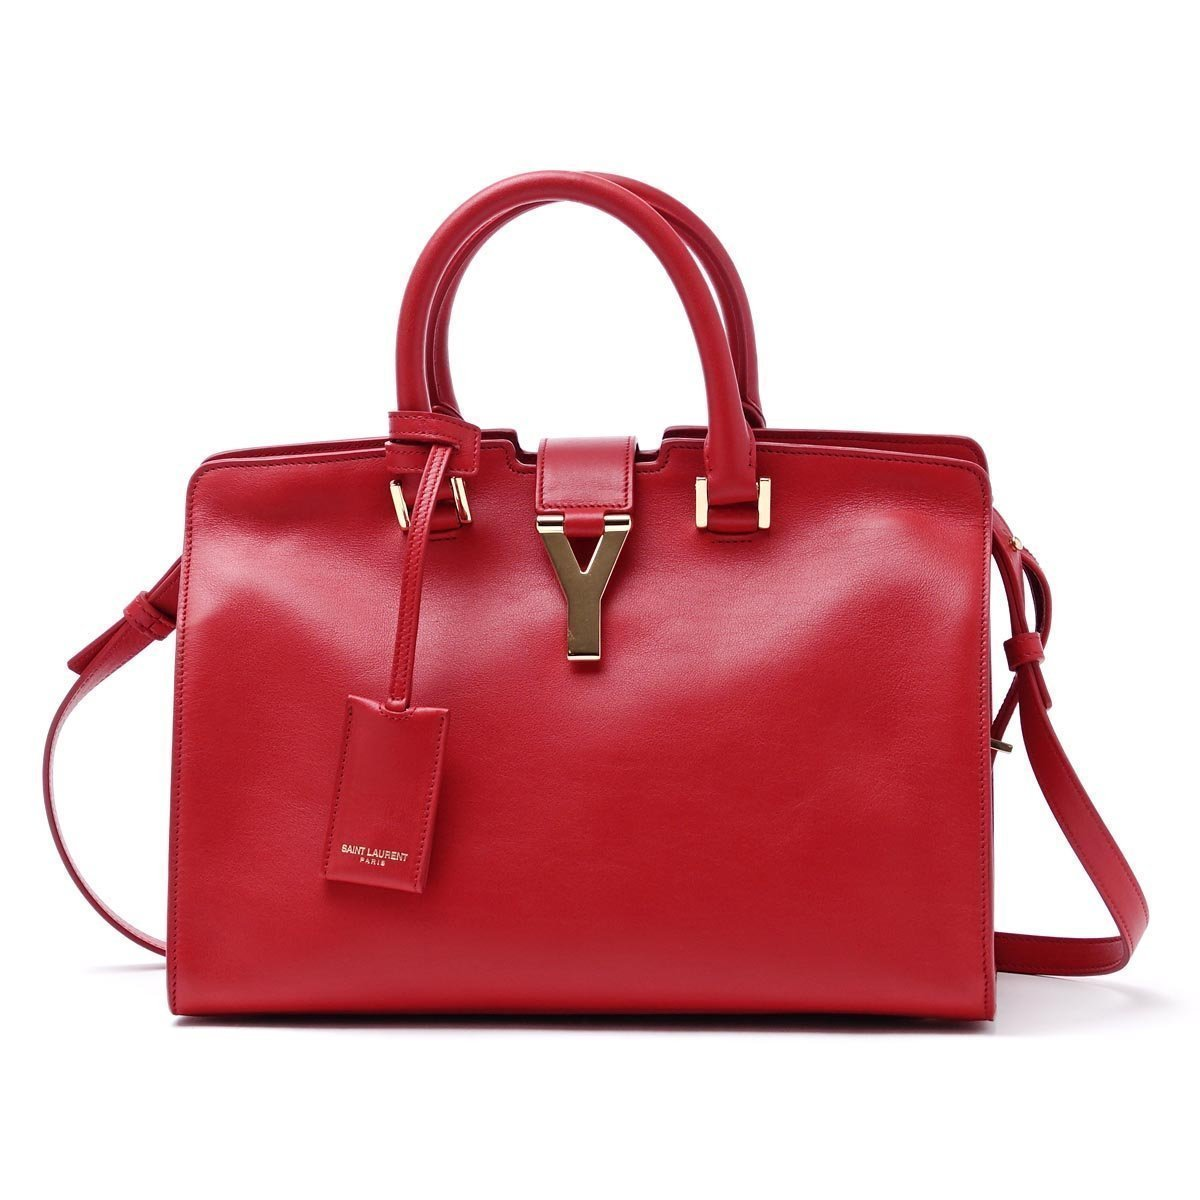 Saint Laurent Classic Red Cabas Y Top Handle Shoulder Bag Medium 311210